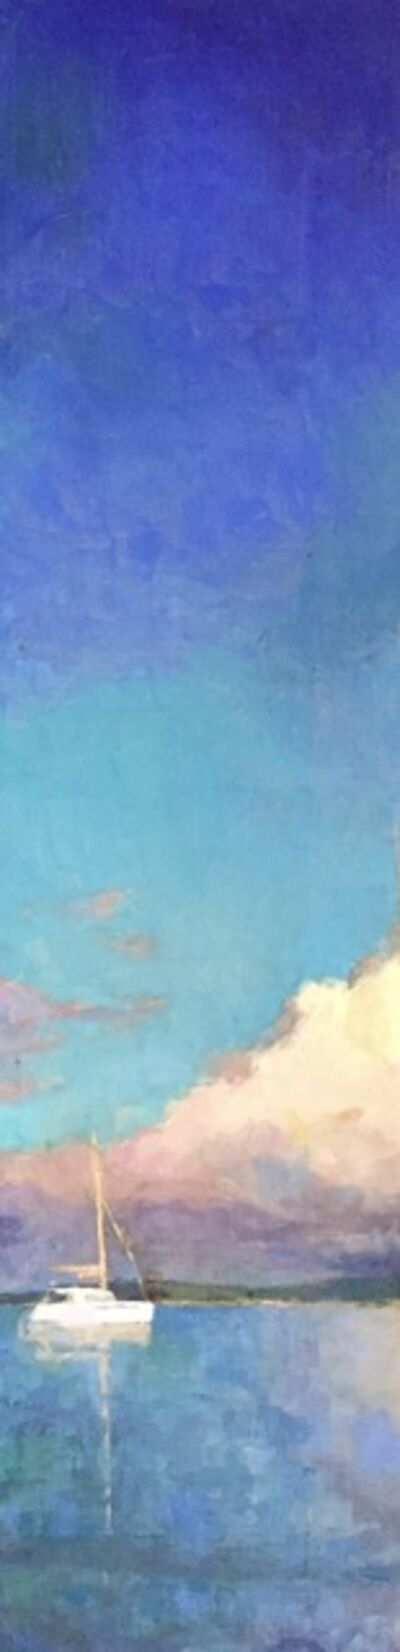 """Larry Horowitz, '""""Catamaran"""" vertical oil painting of bright blue sky and clouds over sailboat', 2020"""